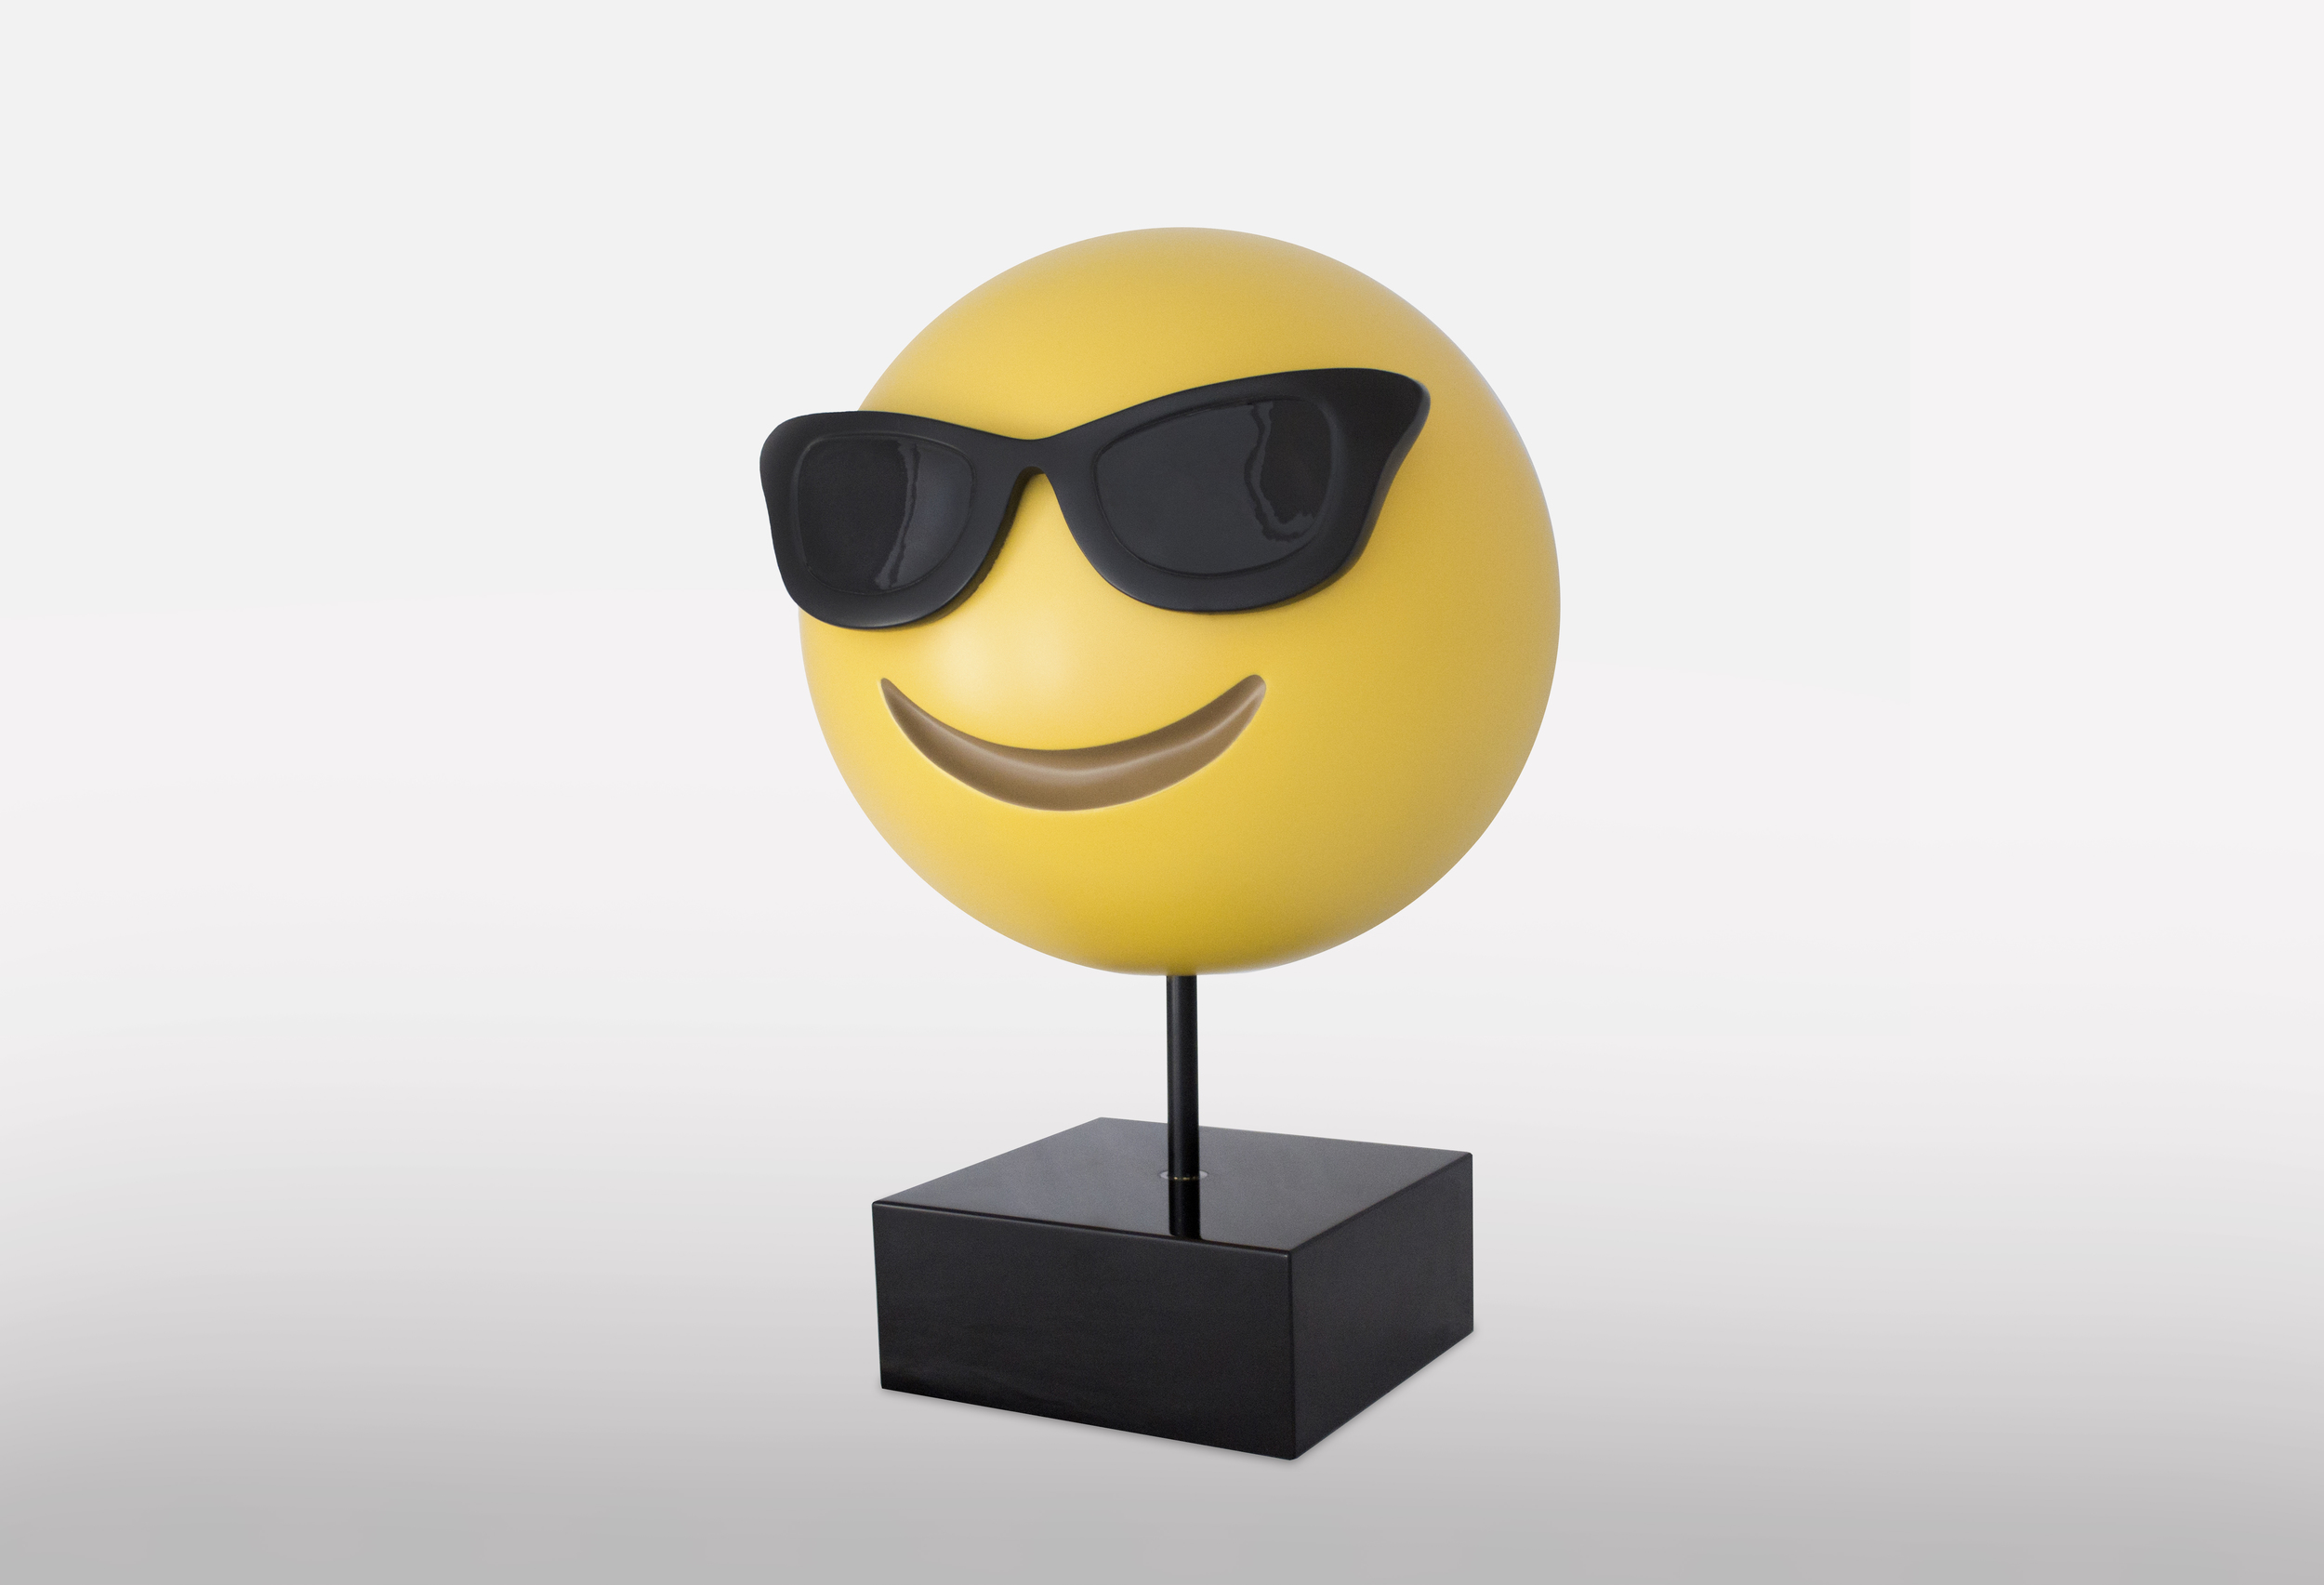 Matthew_LaPenta_Emoji_COLOR_Sunglasses.jpg